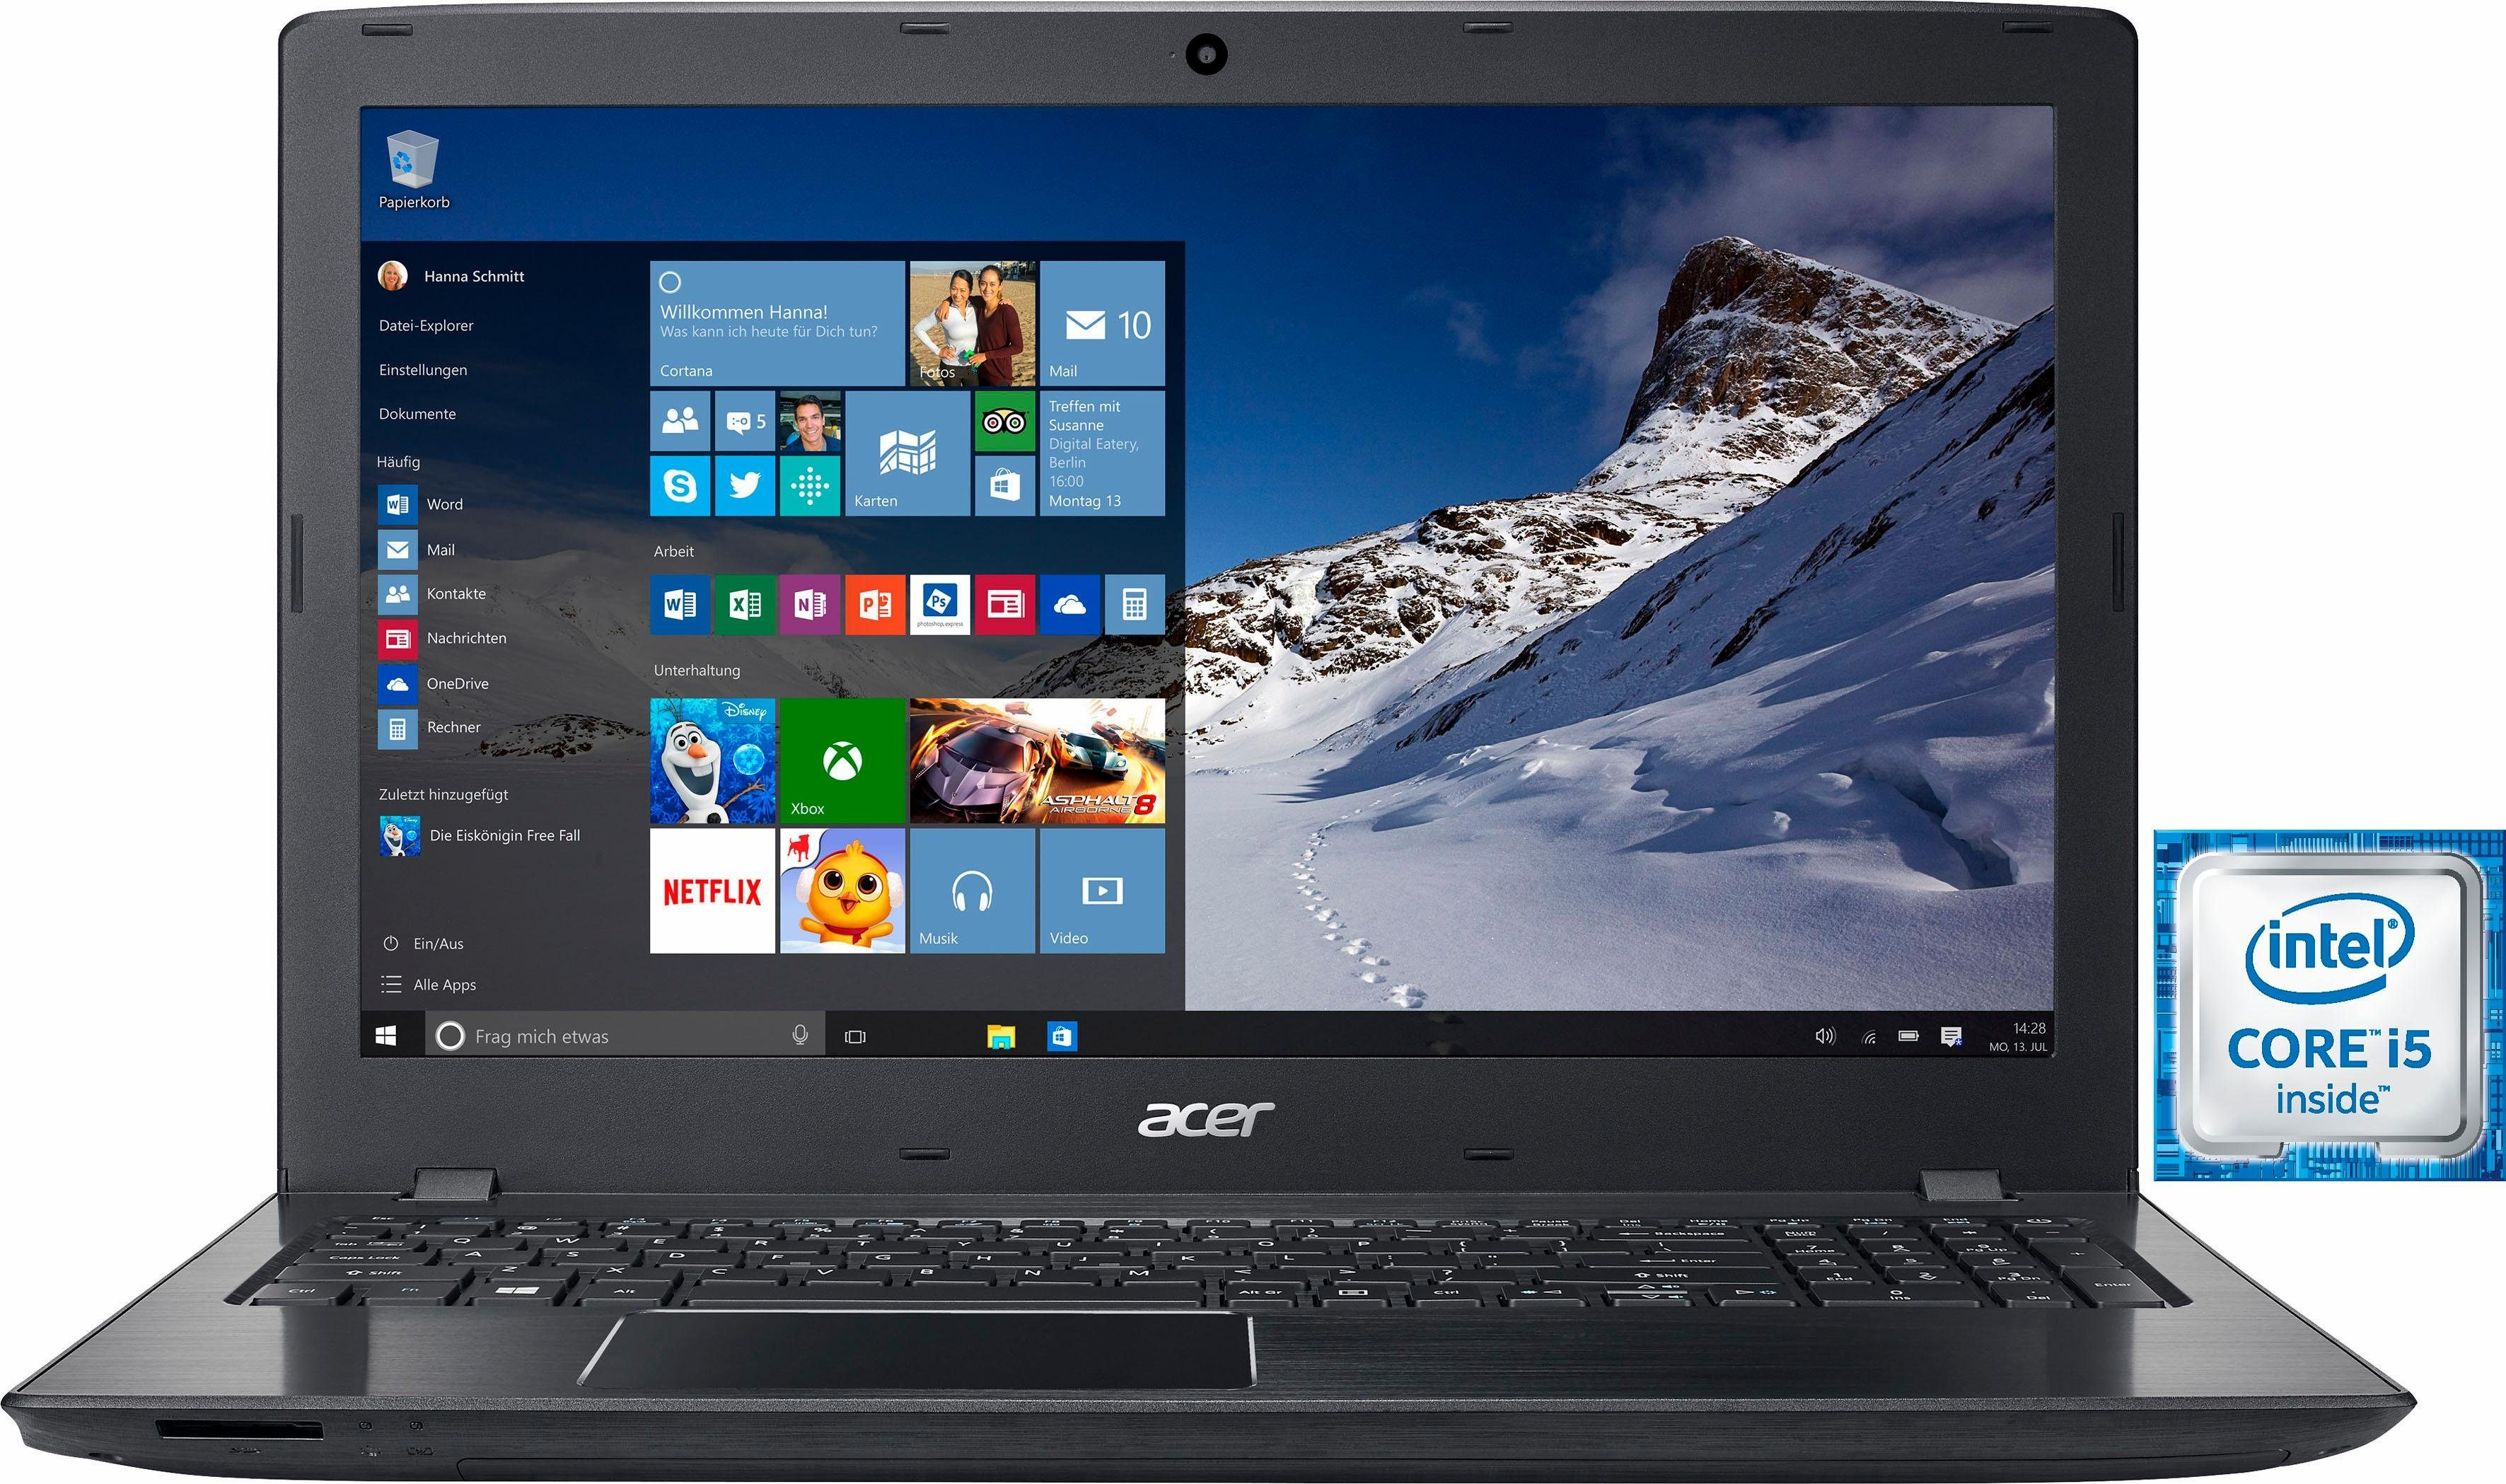 Acer Aspire E5-575G-52XT Notebook, Intel® Core™ i5, 39,6 cm (15,6 Zoll), 1256 GB Speicher